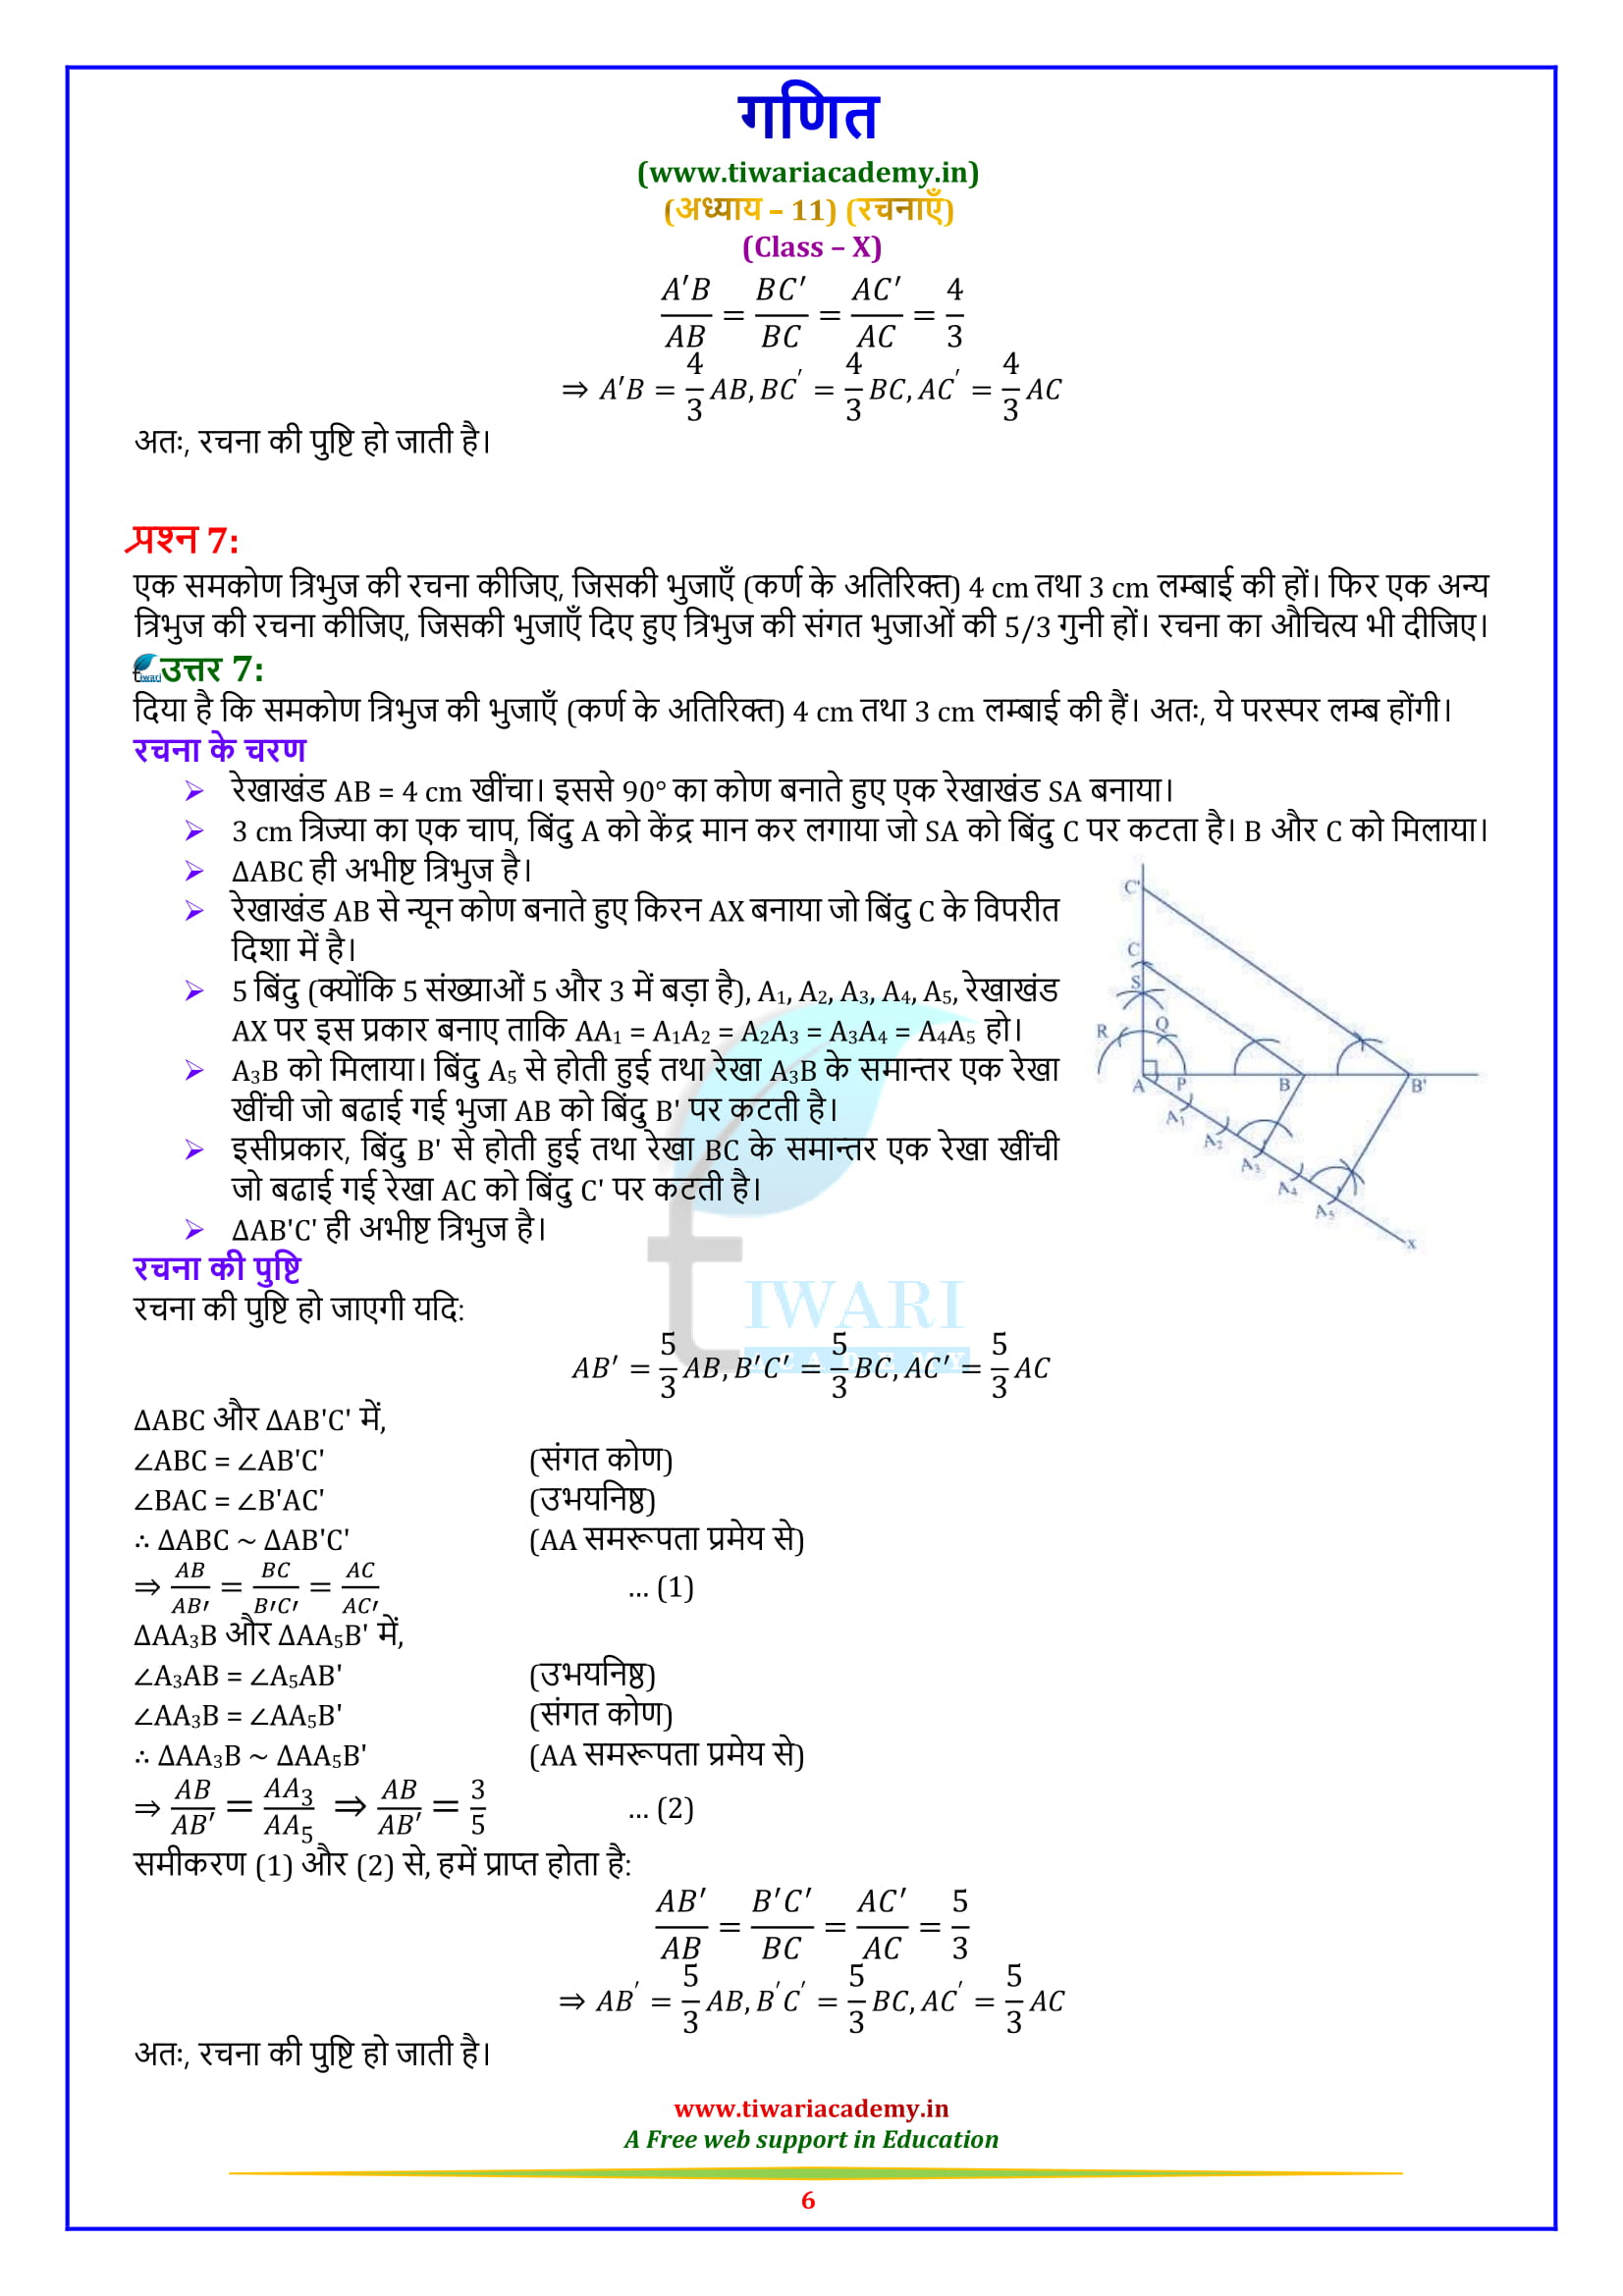 Class 10 Maths Exercise 11.1 solutions all questin answers